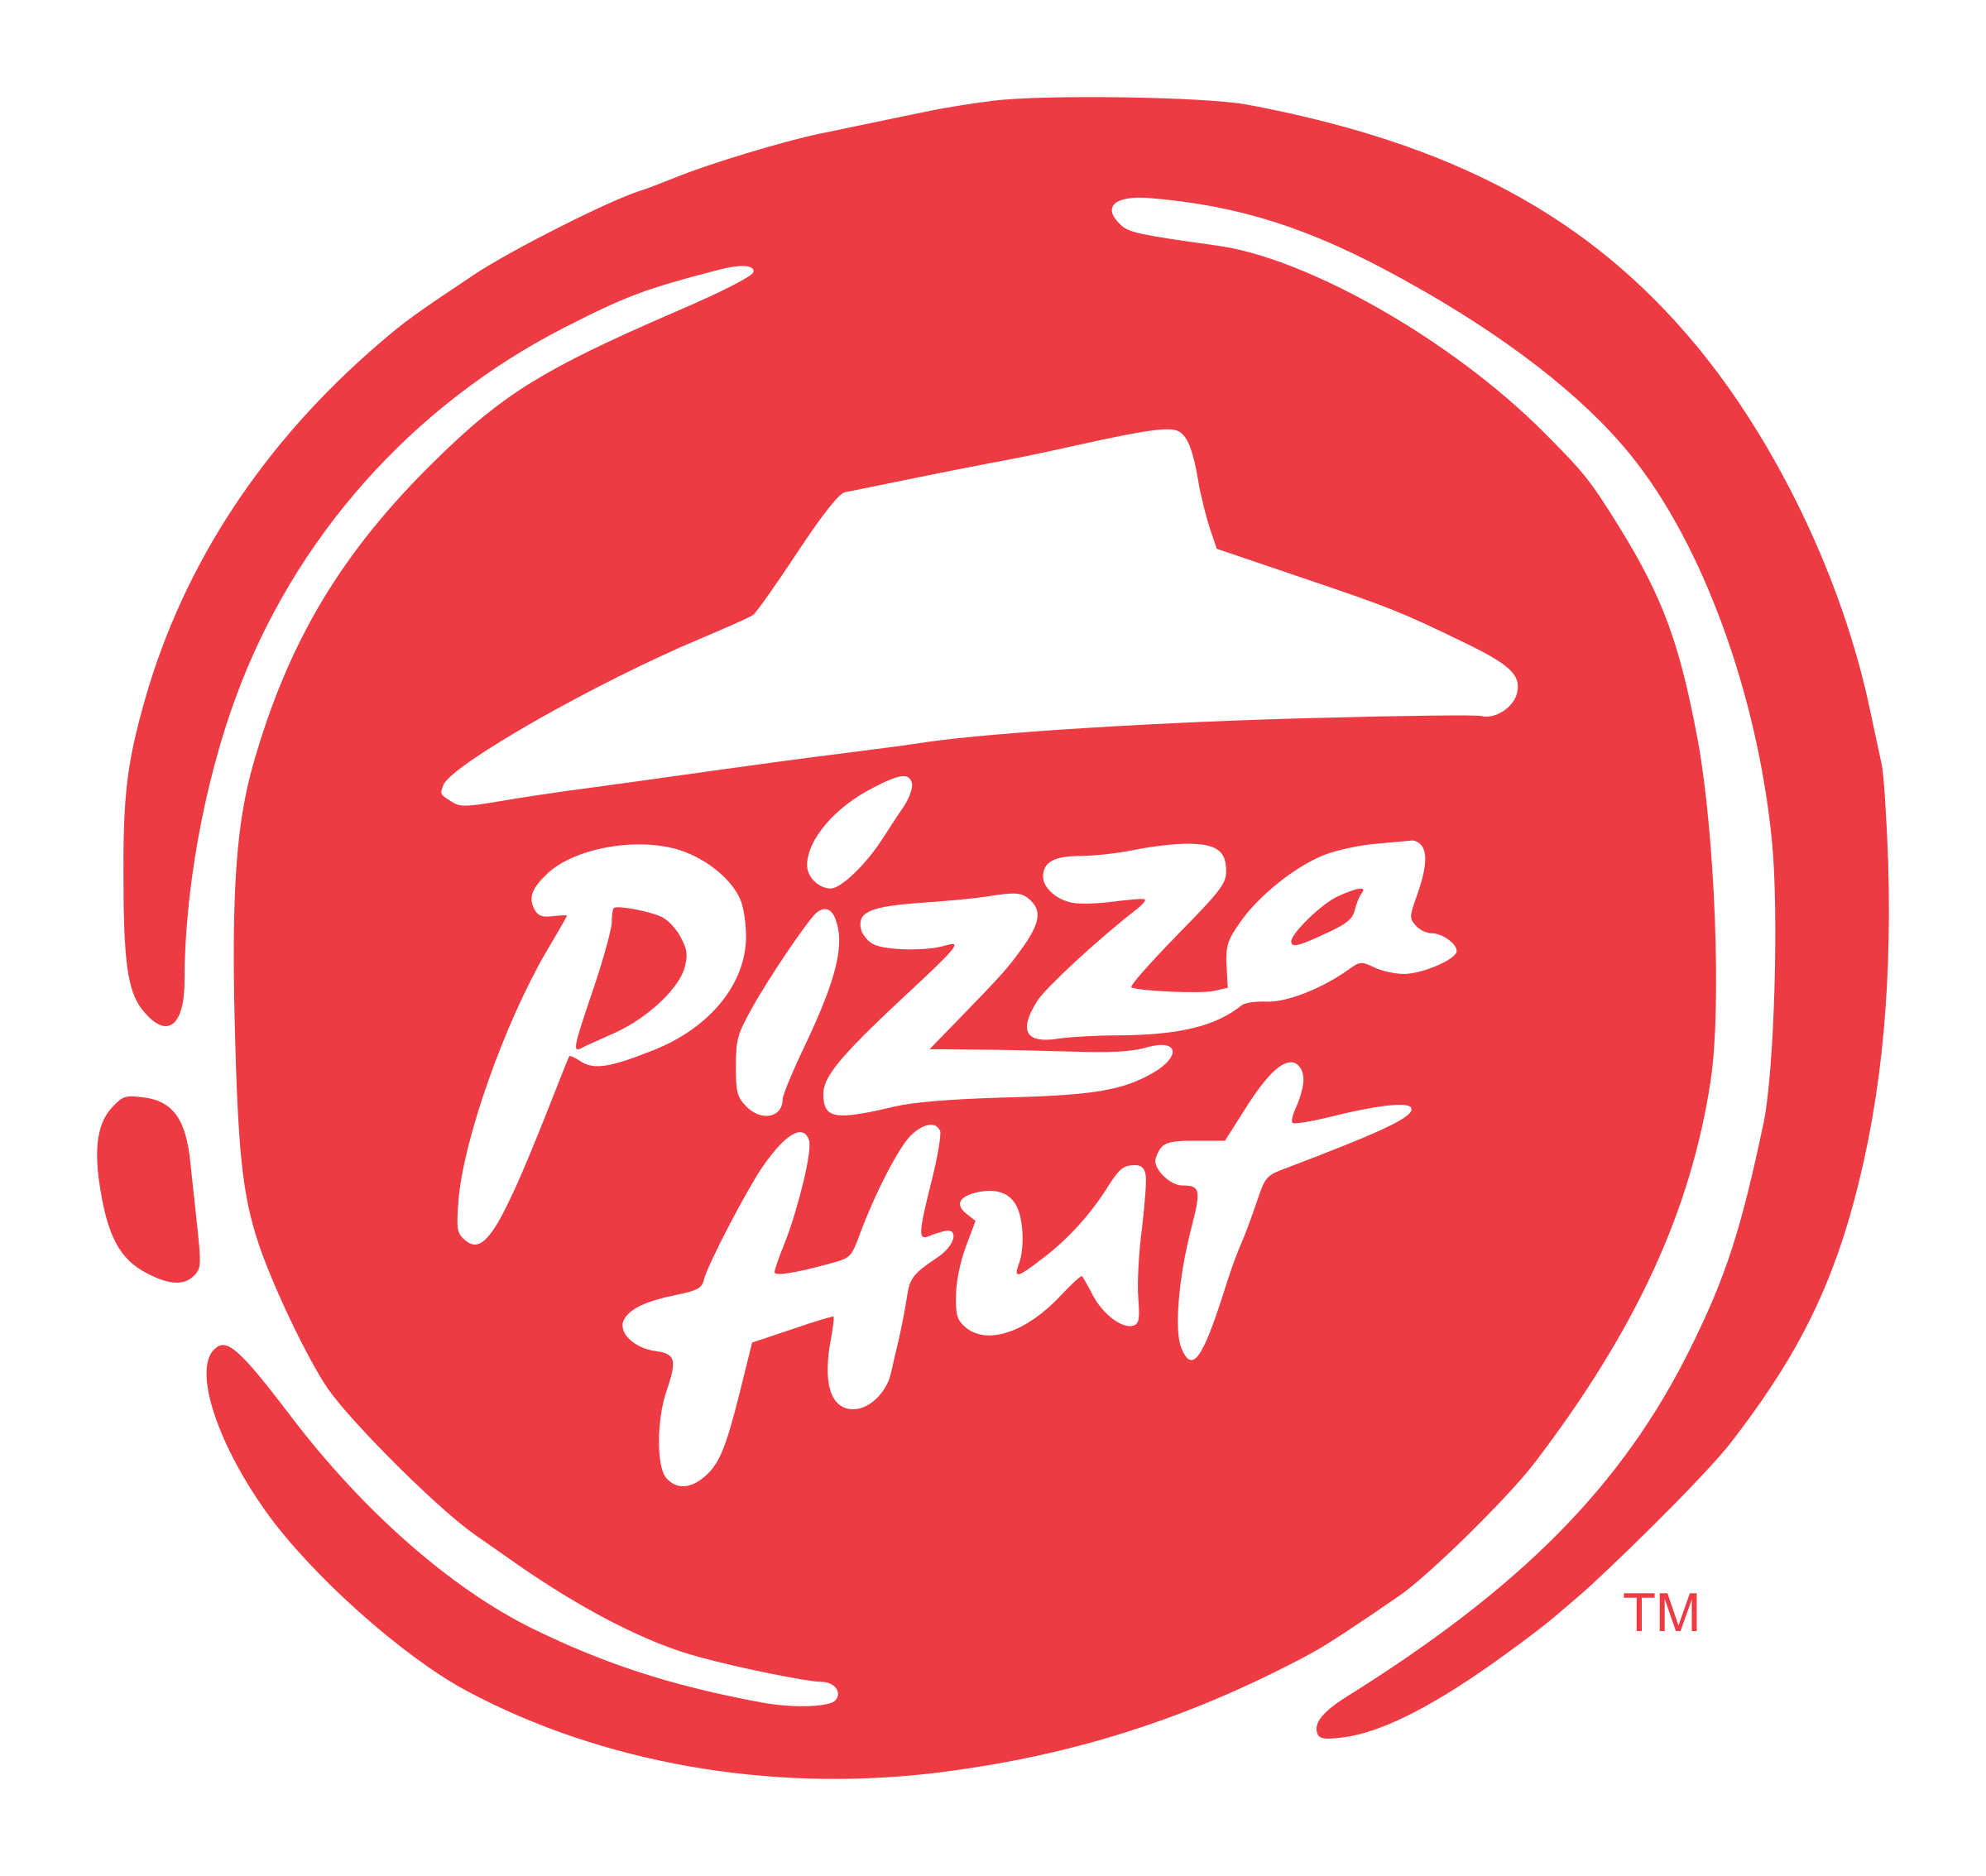 pizza hut logo png transparent amp svg vector freebie supply